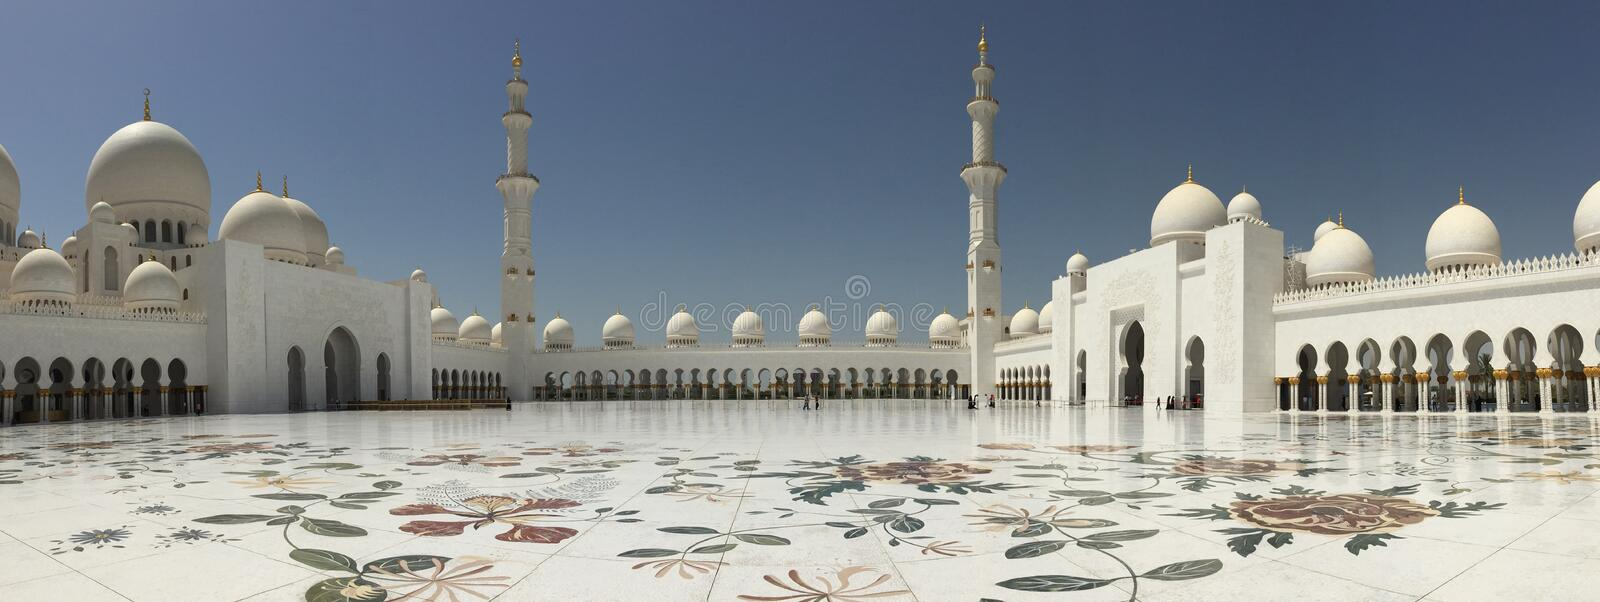 Scheich Zayed Mosque in Abu Dhabi, United Arab Emirates stockfotografie